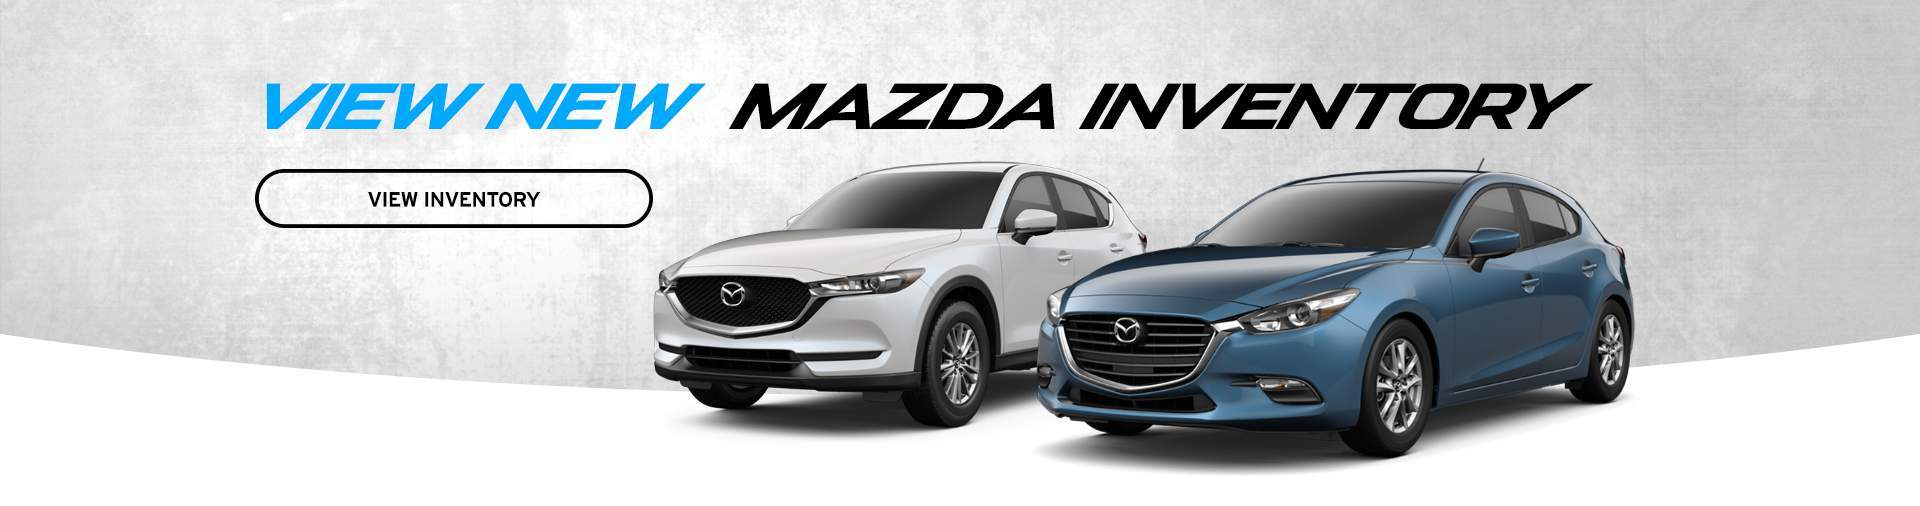 View new Mazda Inventory